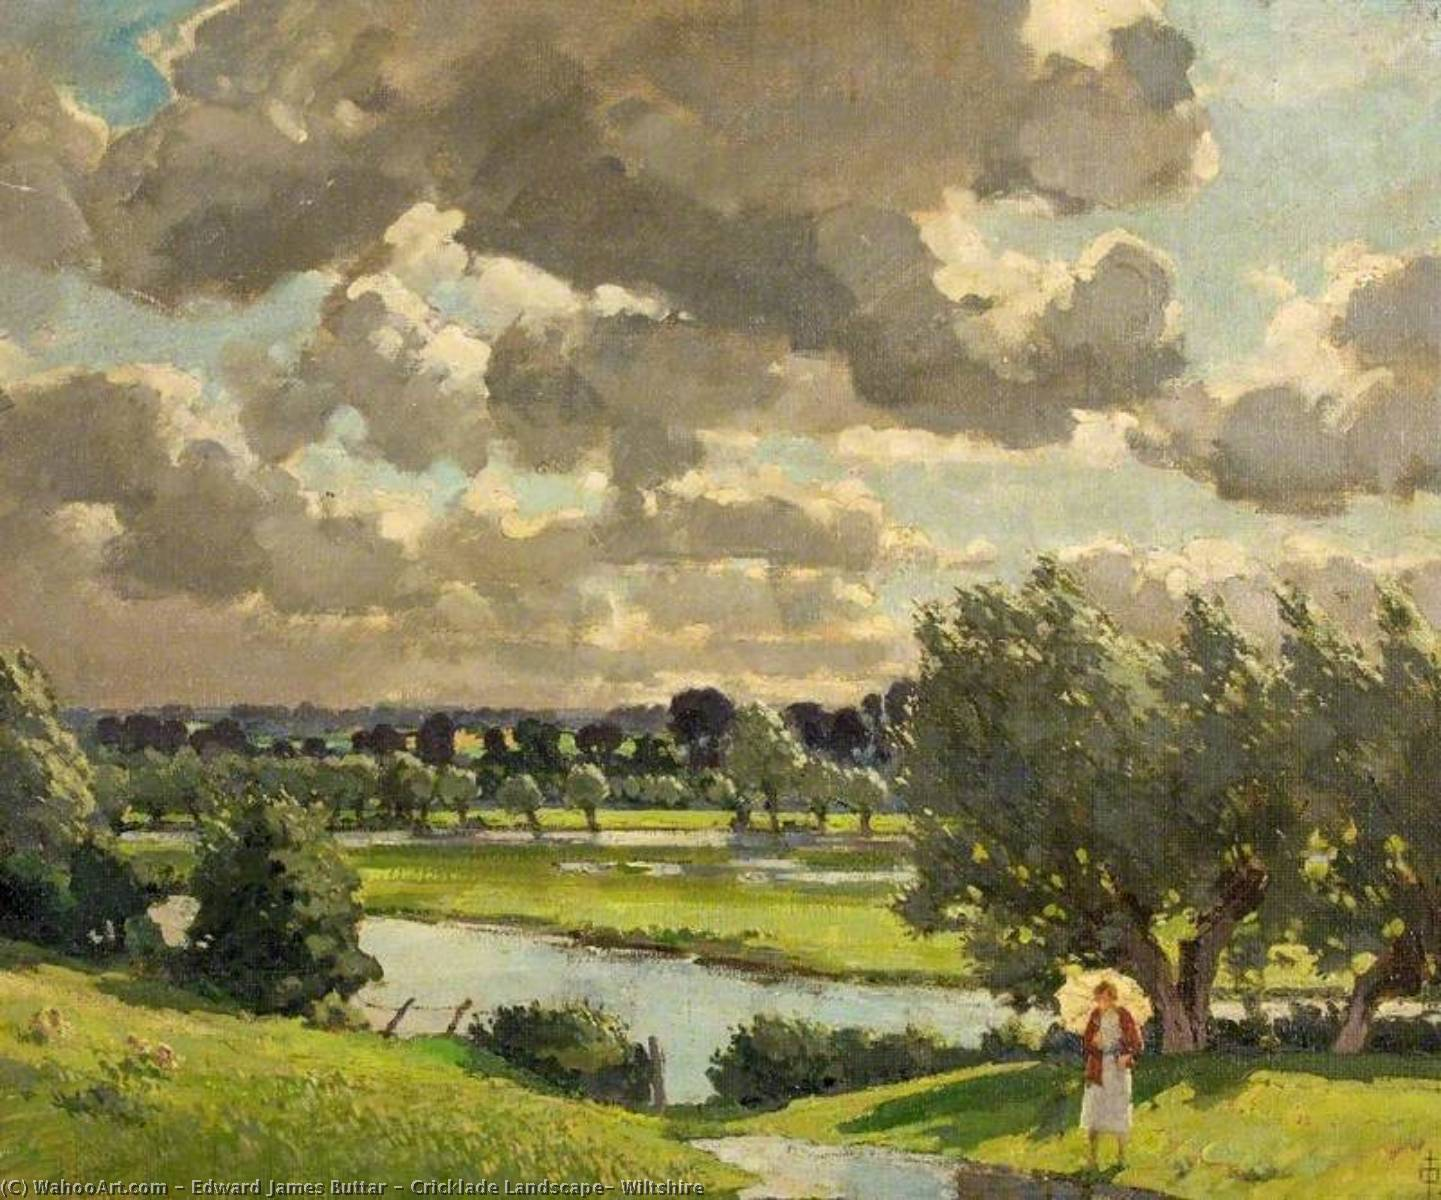 Cricklade Landscape, Wiltshire by Edward James Buttar | Paintings Reproductions Edward James Buttar | WahooArt.com